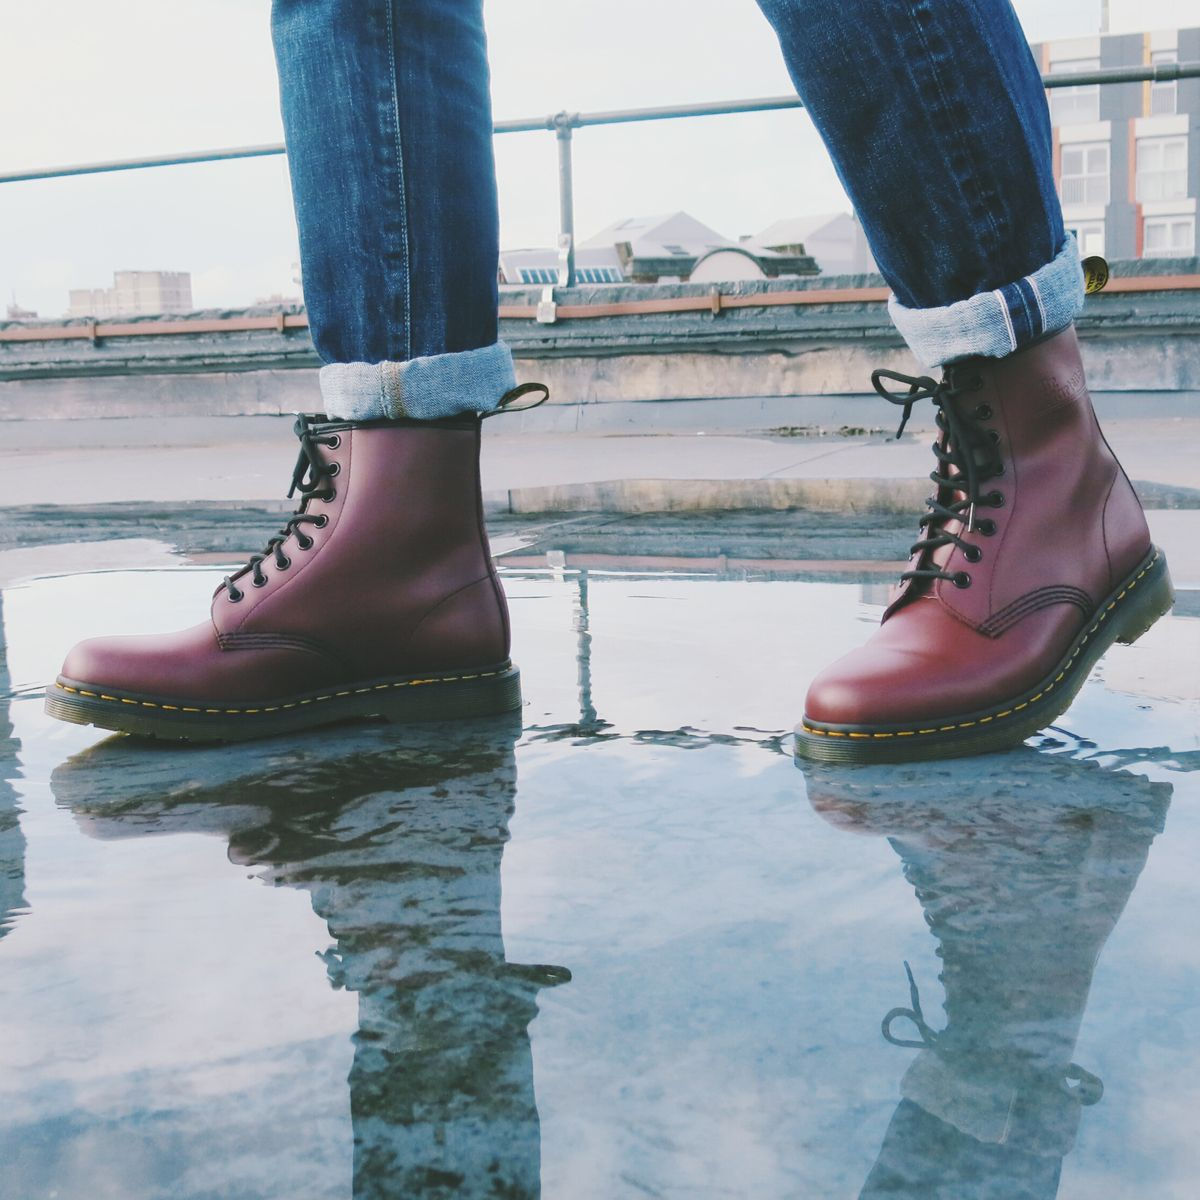 74c2d9a0dbde71 Dr. Martens cherry red 1460 Boot. this pair of boots would change my life